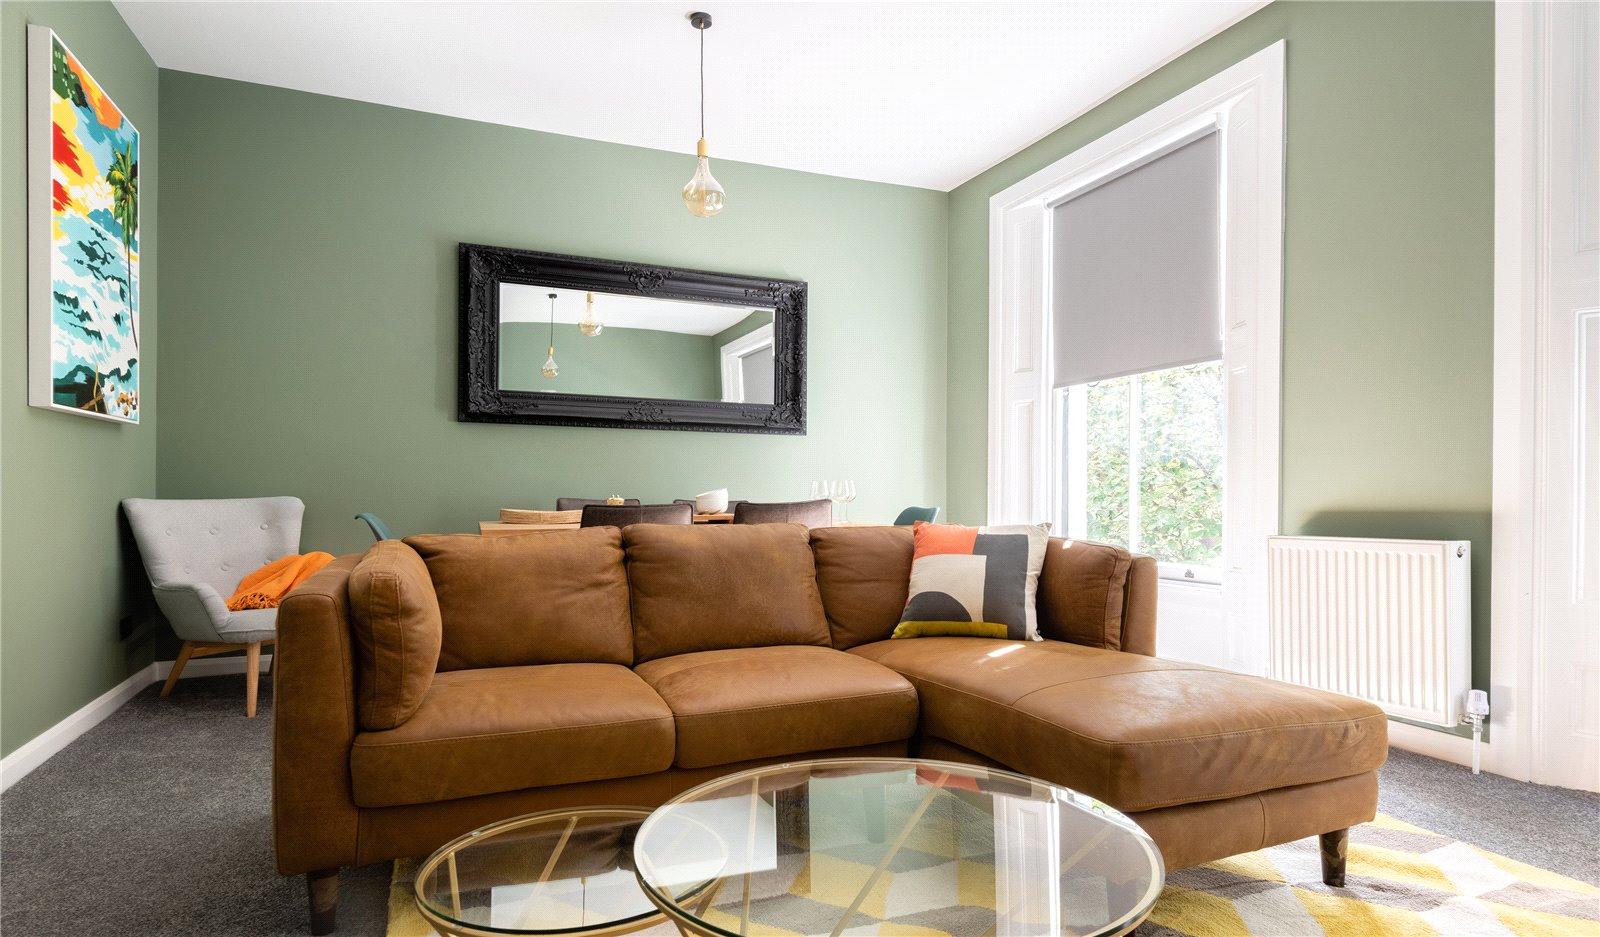 3 bed apartment for sale in Kentish Town, NW5 4DA  - Property Image 6